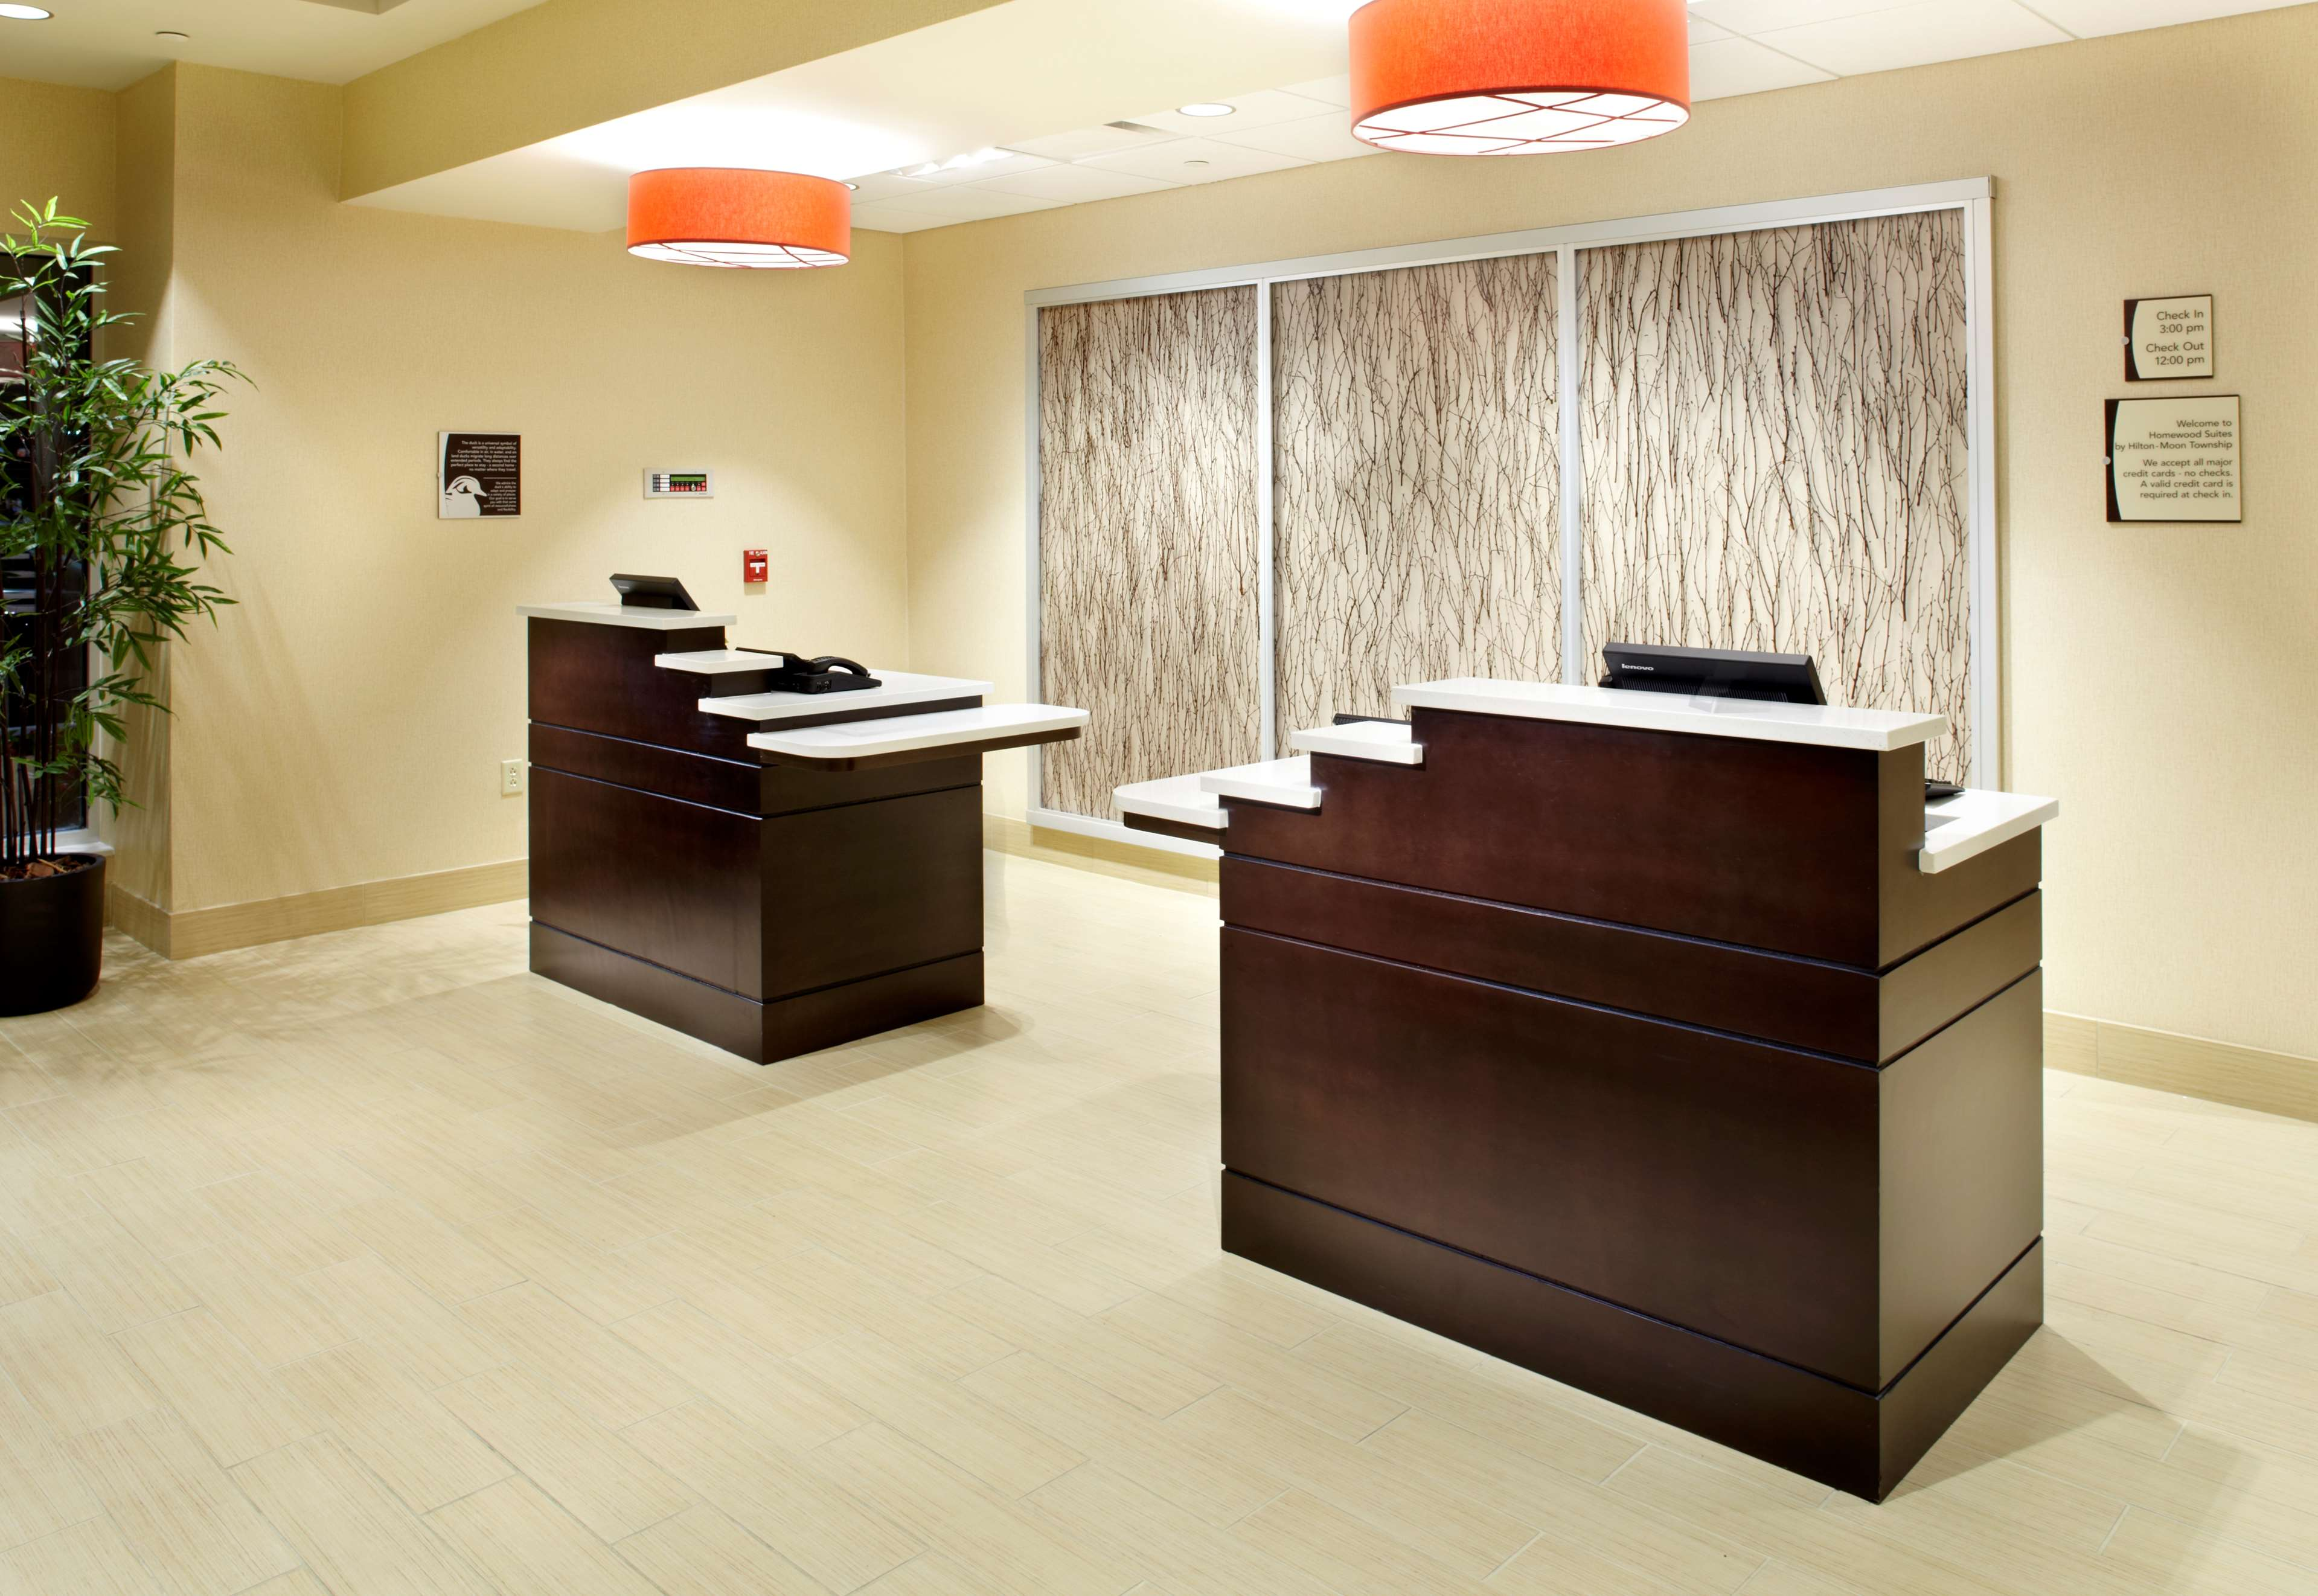 Homewood Suites by Hilton Pittsburgh Airport Robinson Mall Area PA image 6